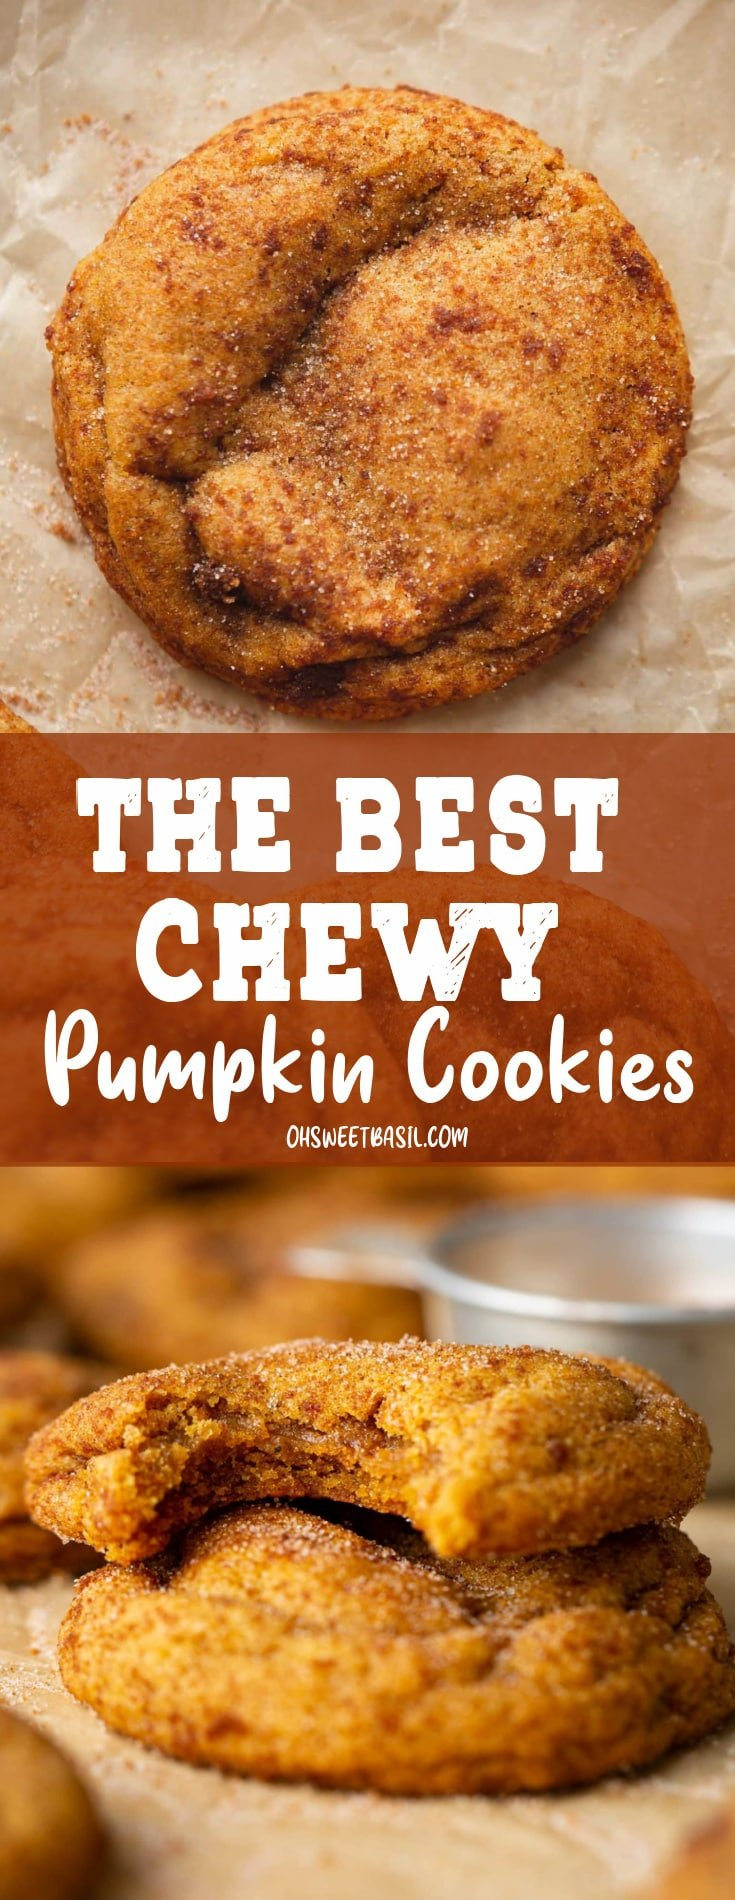 A chewy pumpkin cookie. It is baked to a golden brown and topped with brown sugar and cinnamon.